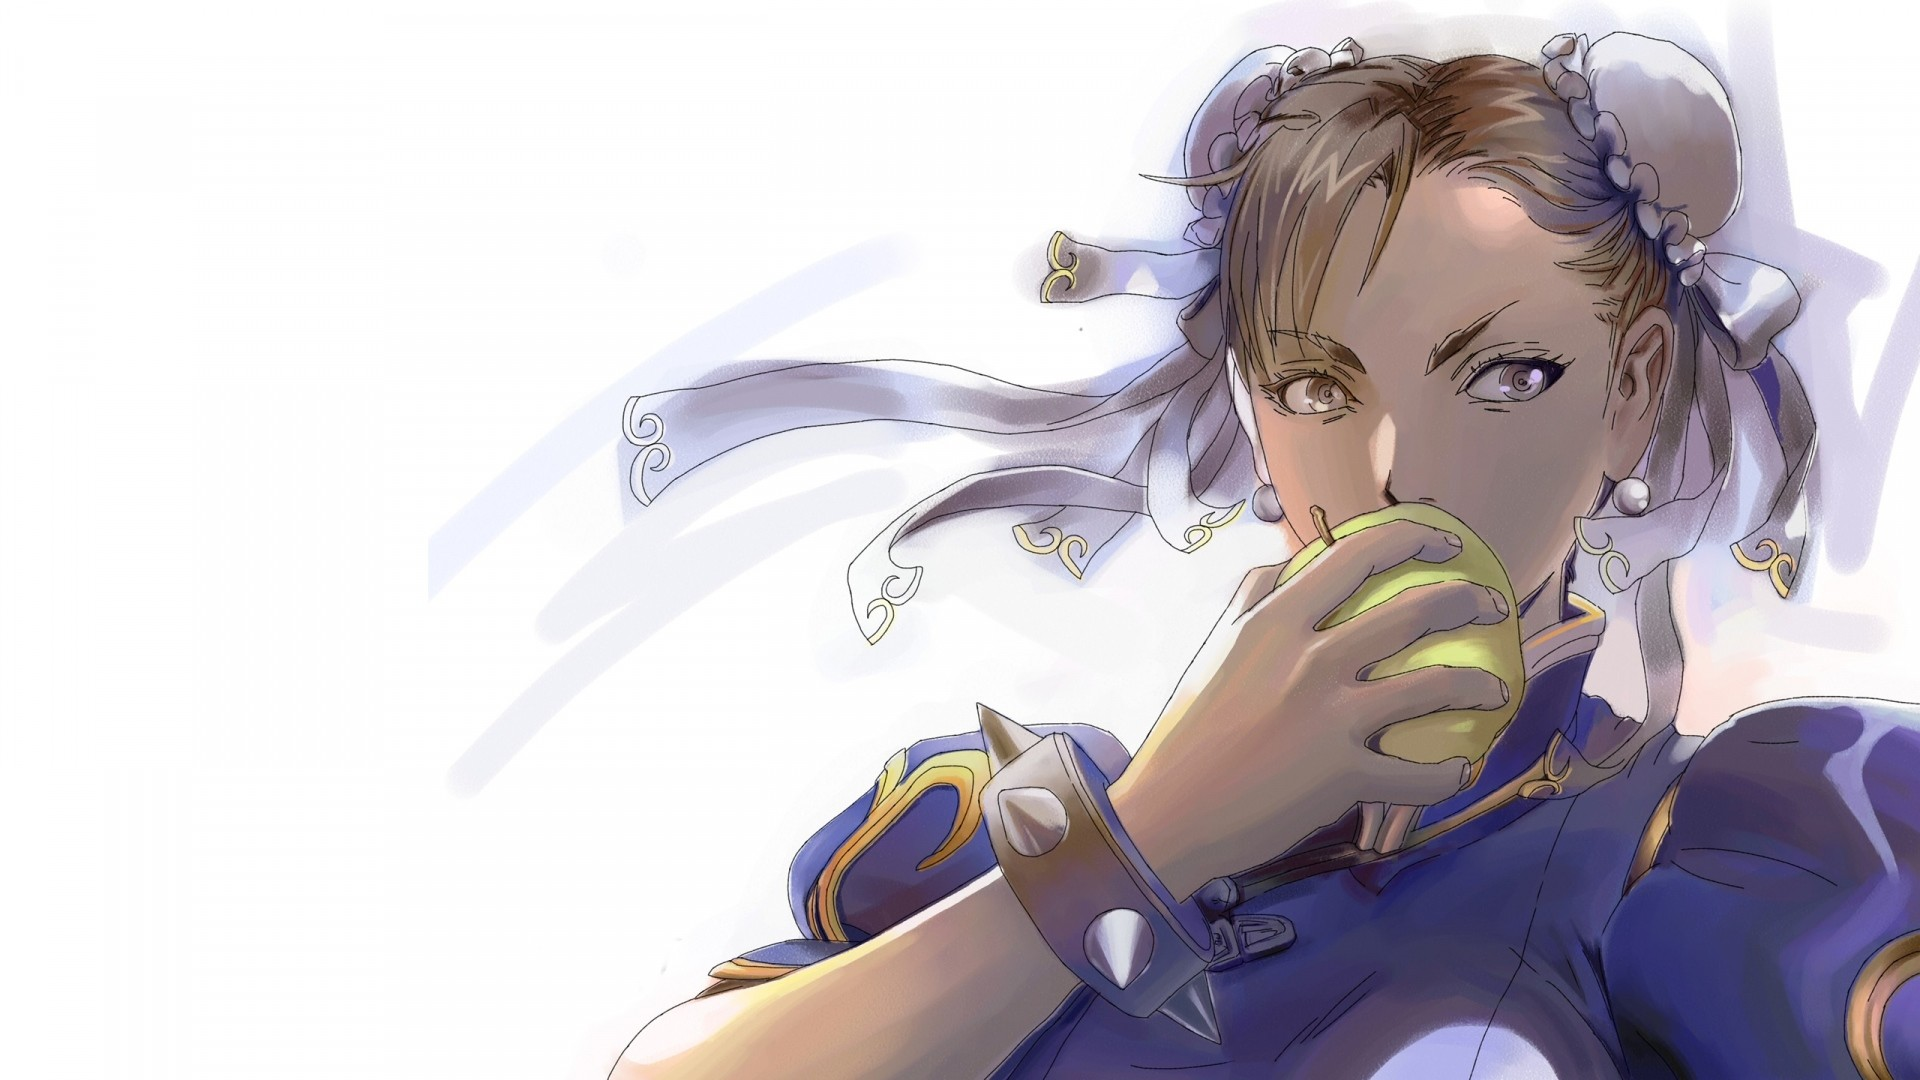 Preview wallpaper street fighter, chun-li, girl, anime, apple 1920×1080